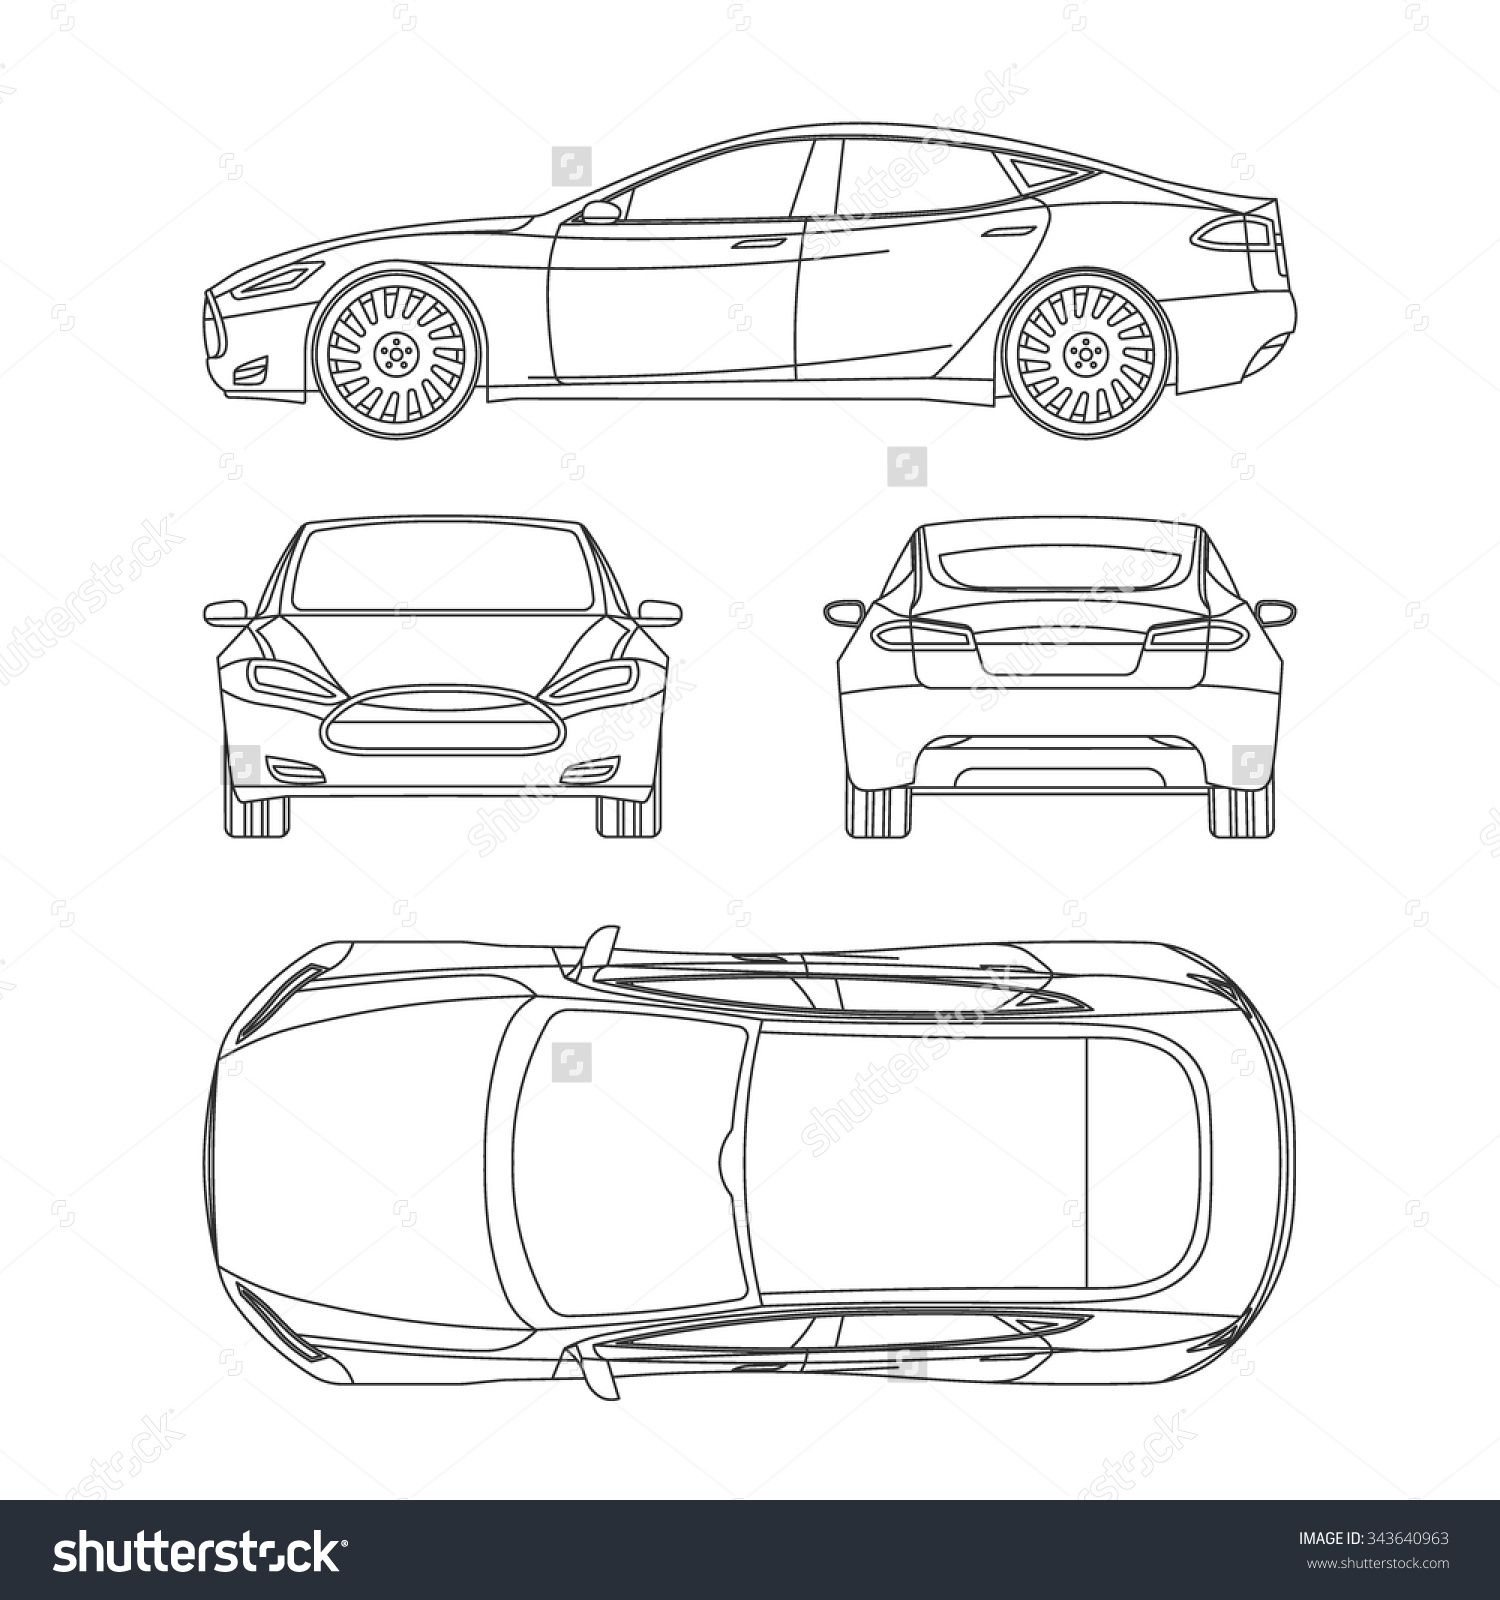 Architecture Drawing Cars architecture drawing cars unique architecture drawing cars